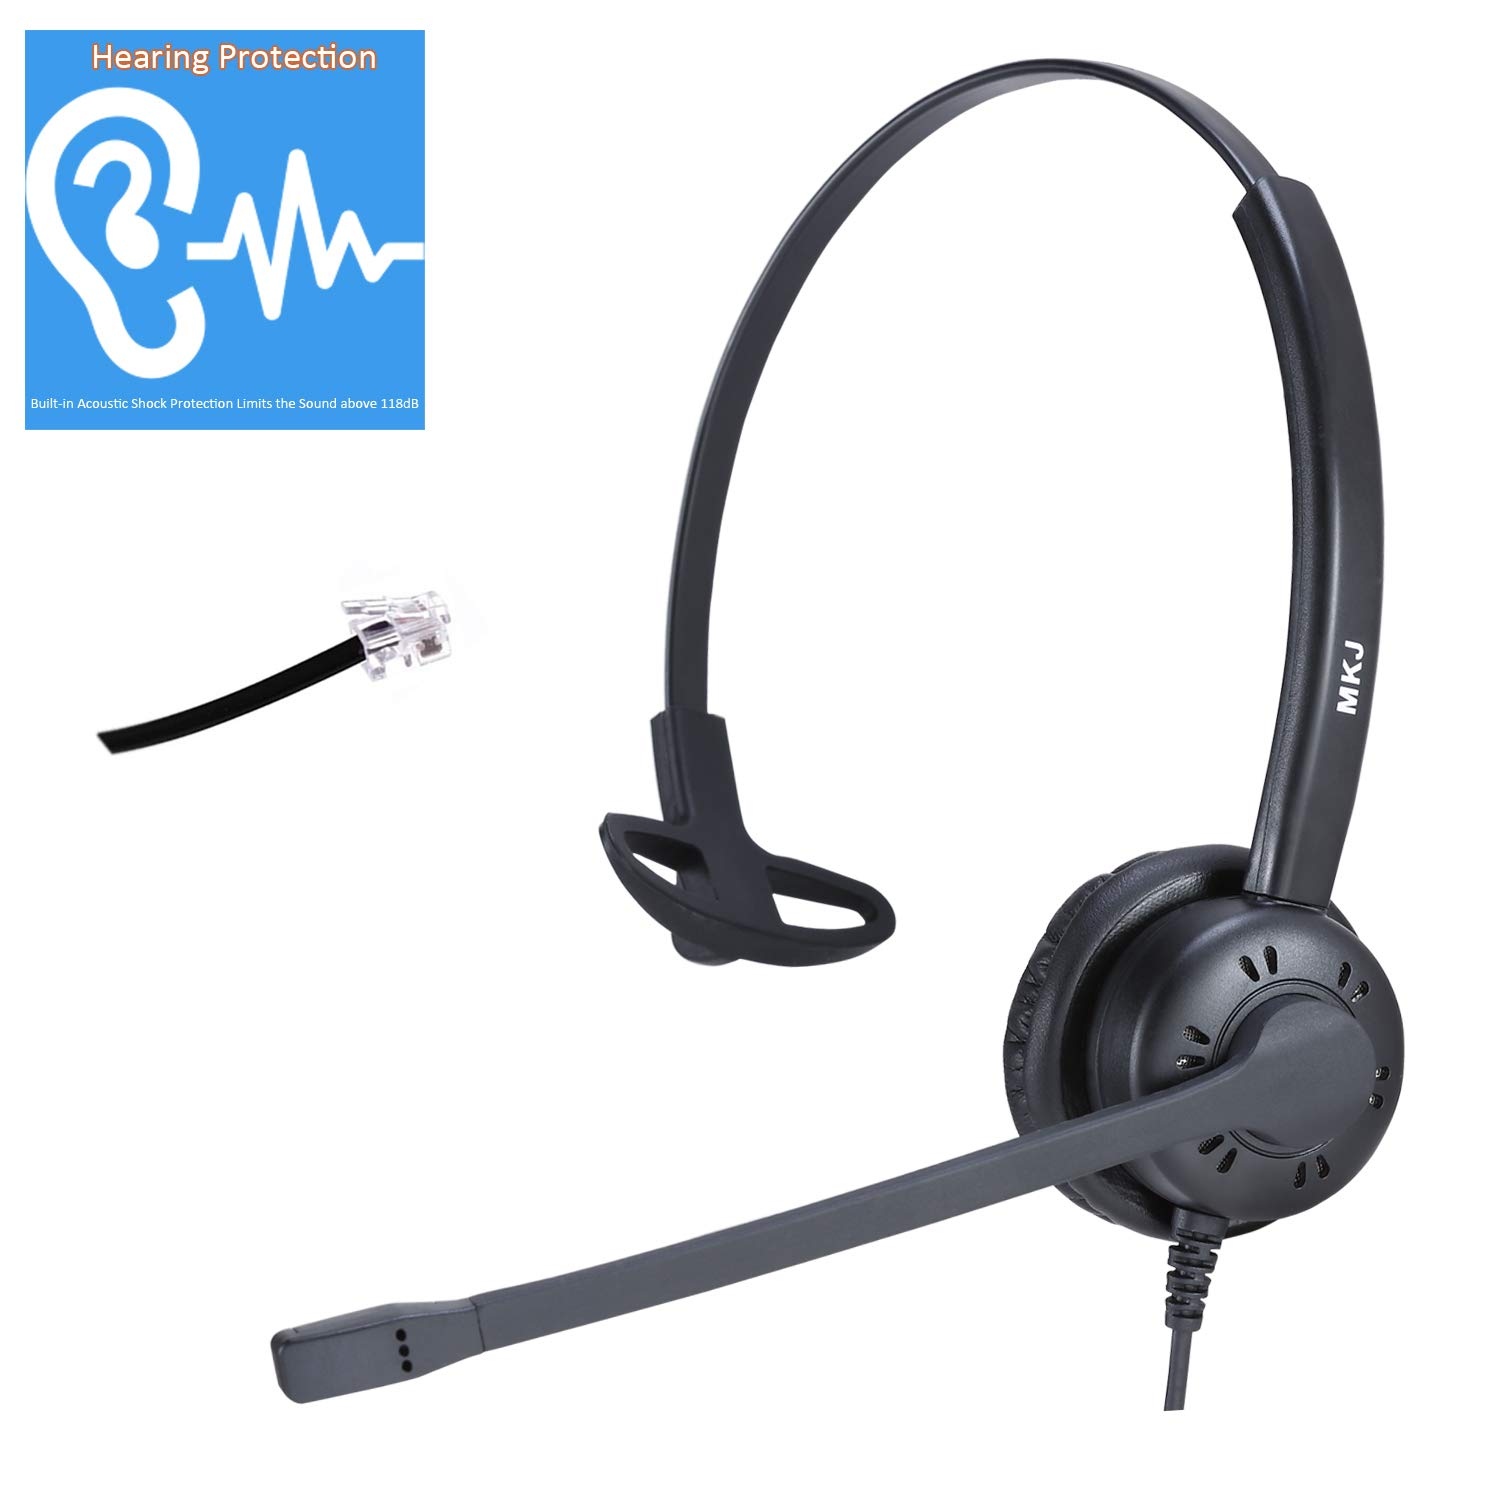 MKJ Corded Phone Headset RJ9 Telephone Headset with Microphone for Cisco Phone 7962, 7965, 7975, 7941, 7942, 7841 etc